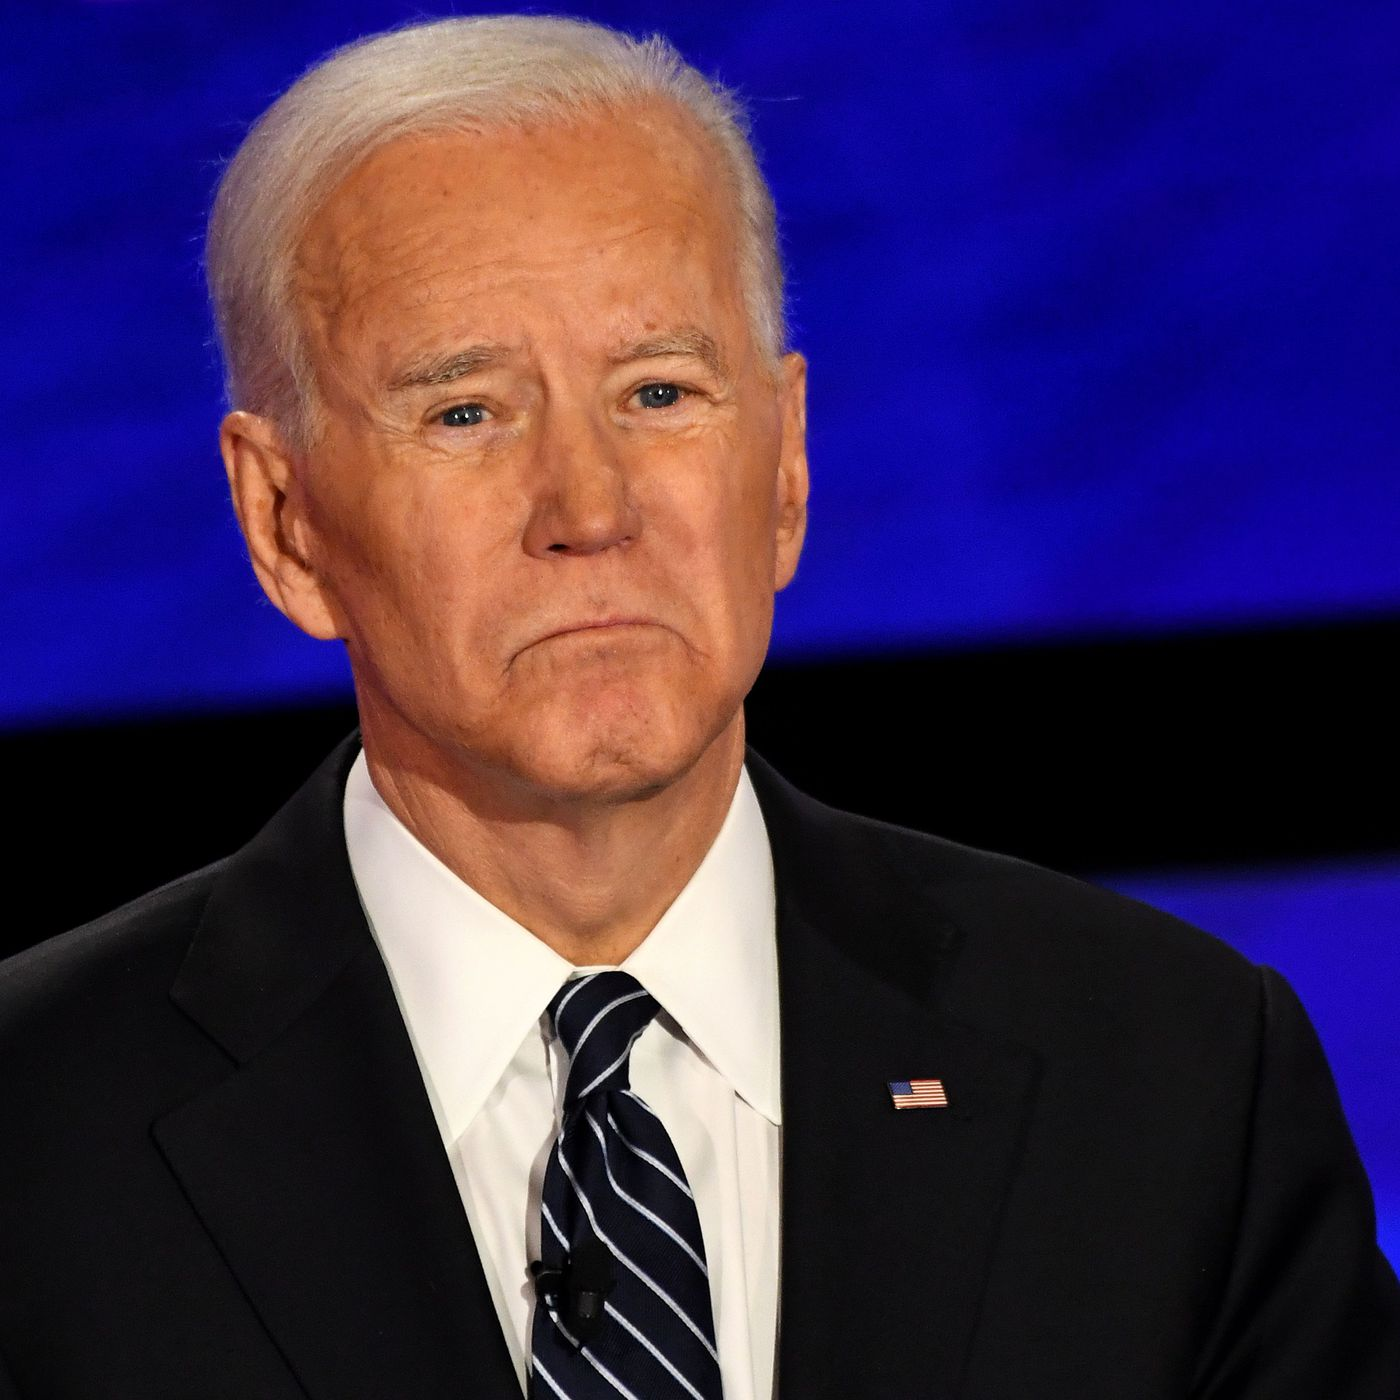 Joe Biden Wants To Revoke Section 230 The Verge